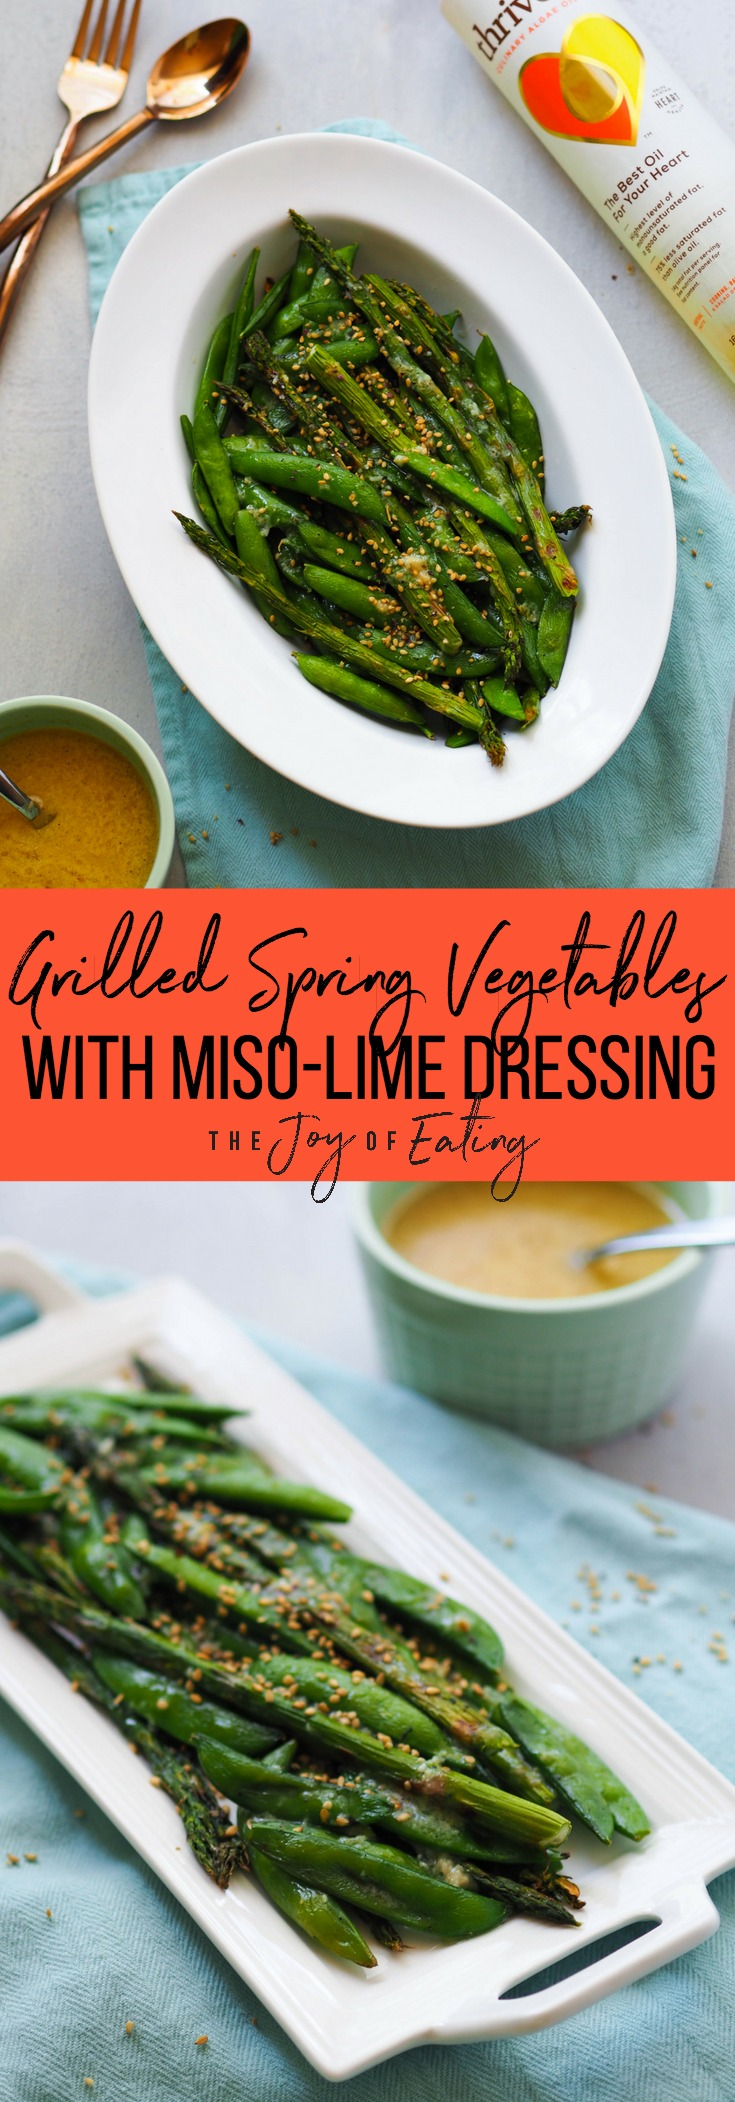 Grilled Spring Vegetables with Miso-Lime Dressing! Throw seasonal veggies on the grill, then drizzle with a probiotic rich miso-lime dressing and sprinkle with sesame seeds! #vegetarian #grilling #spring #sidedish #asparagus #probiotic #vegan